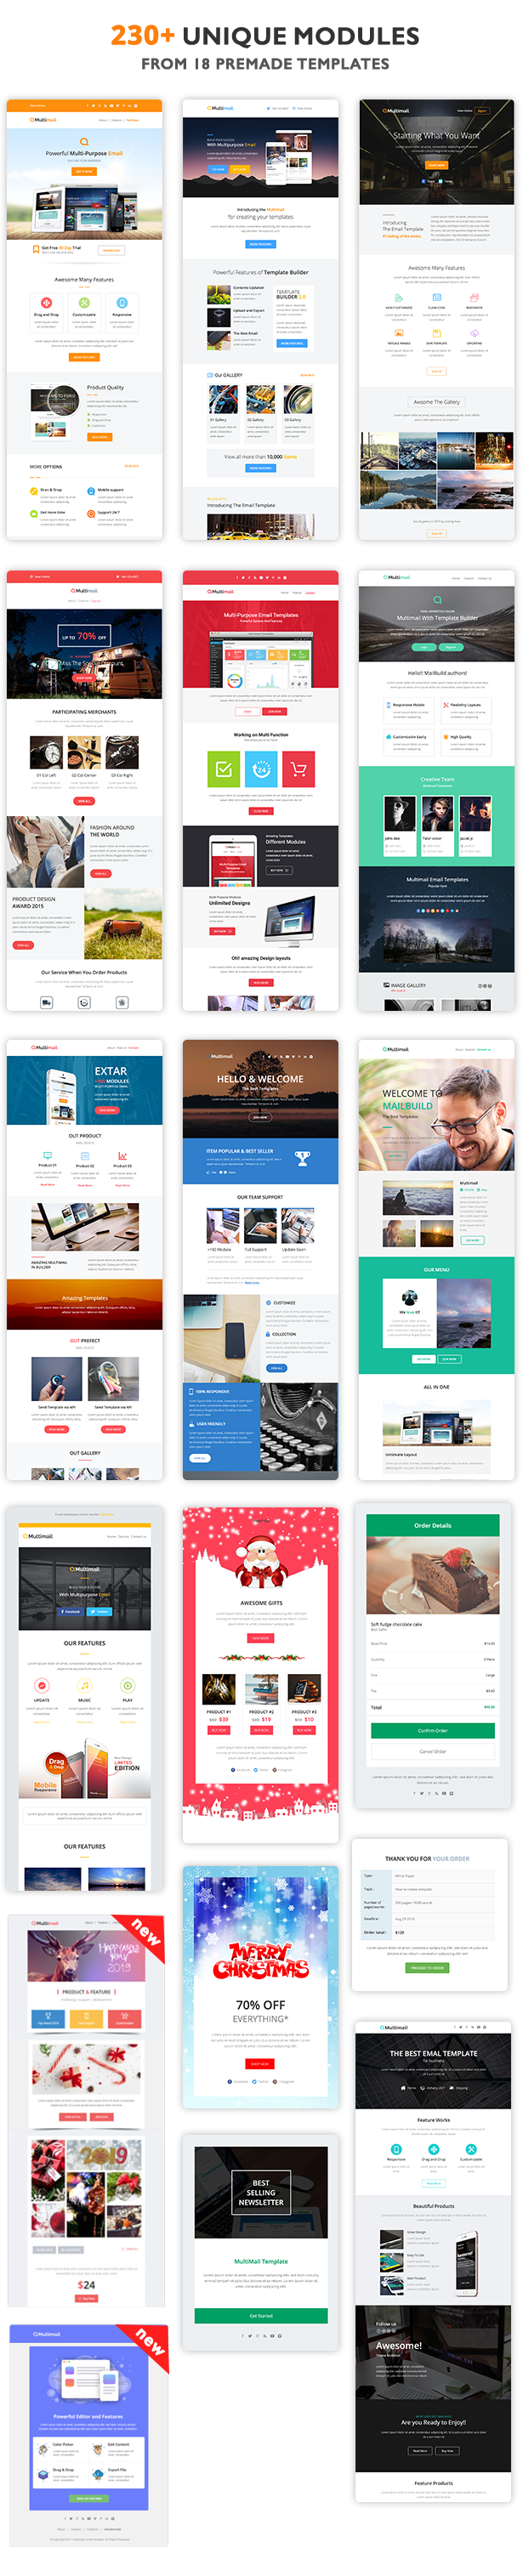 Multimail | Responsive Email Template Set + Builder Online - 4